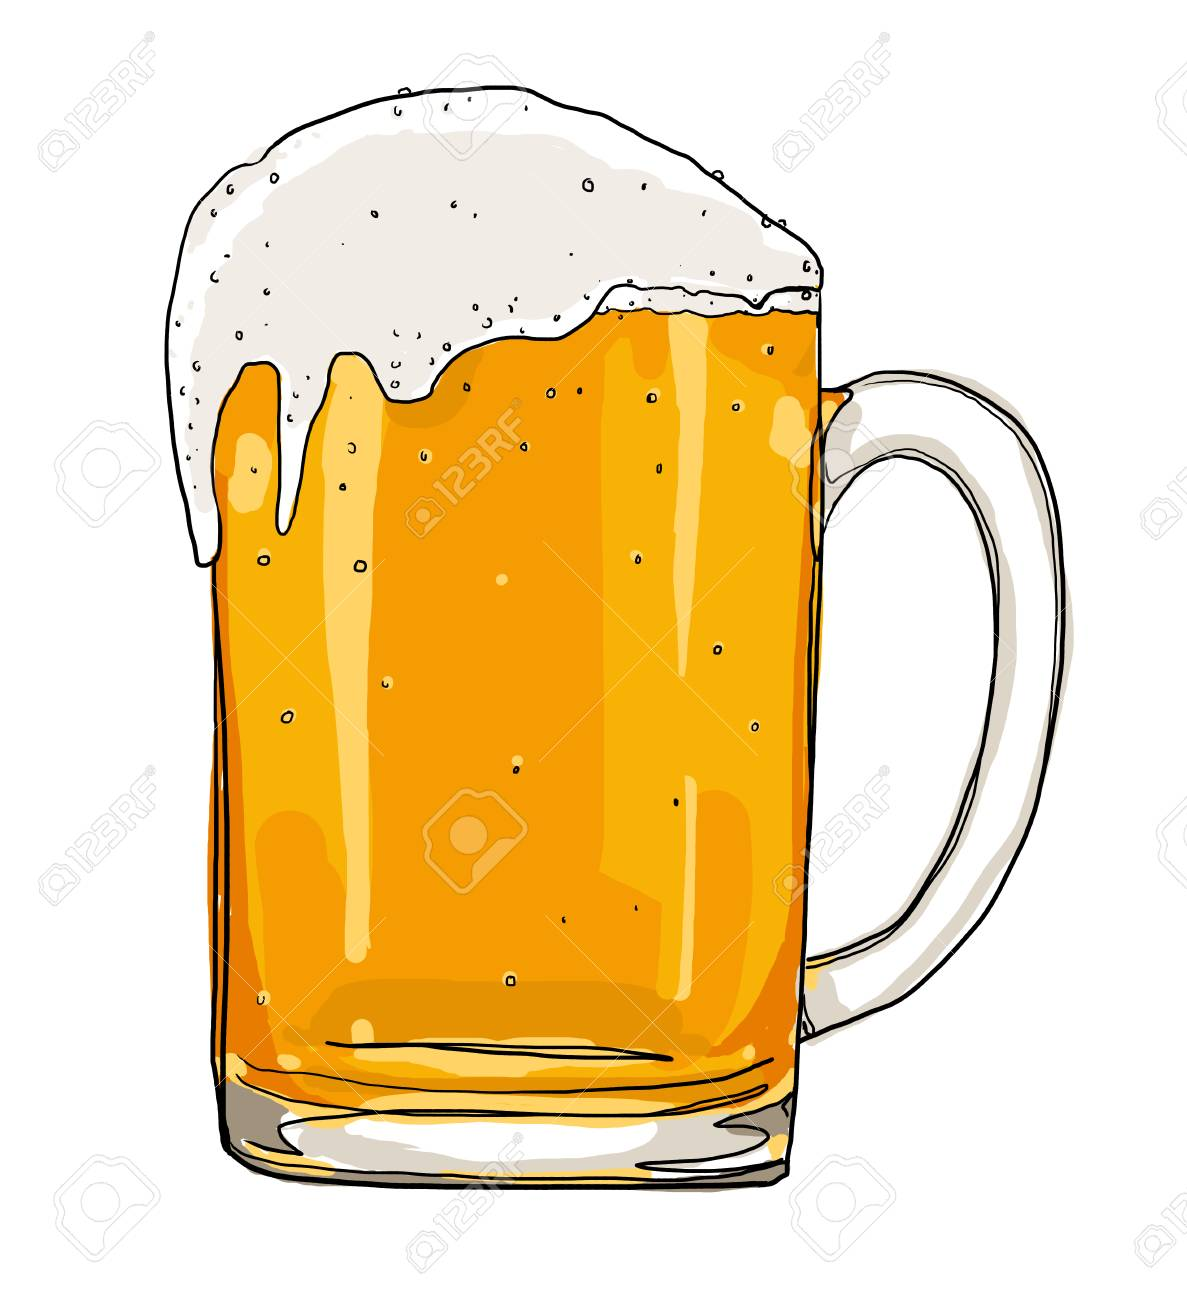 Frosty Glass Of Light Beer Painting Stock Photo Picture And Royalty Free Image Image 32044084